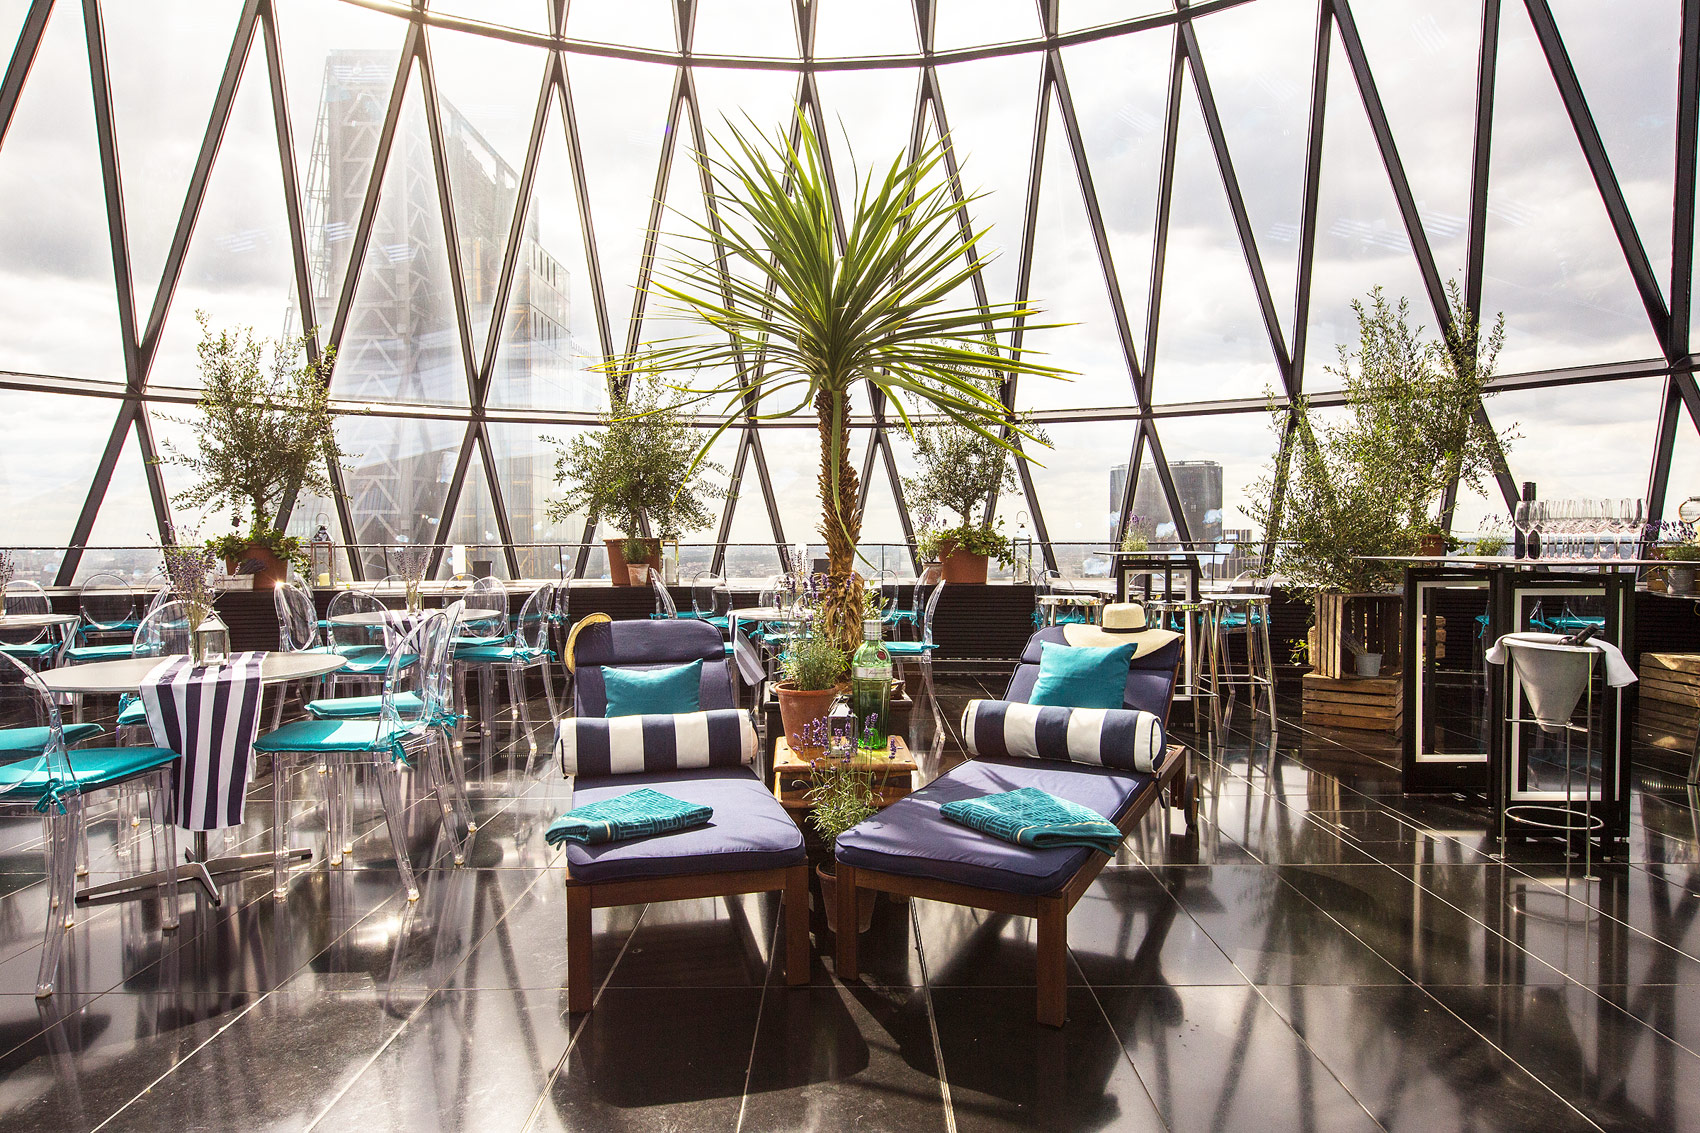 We Go Sky-High In Searcys Summer Pop-Up At London's Gherkin